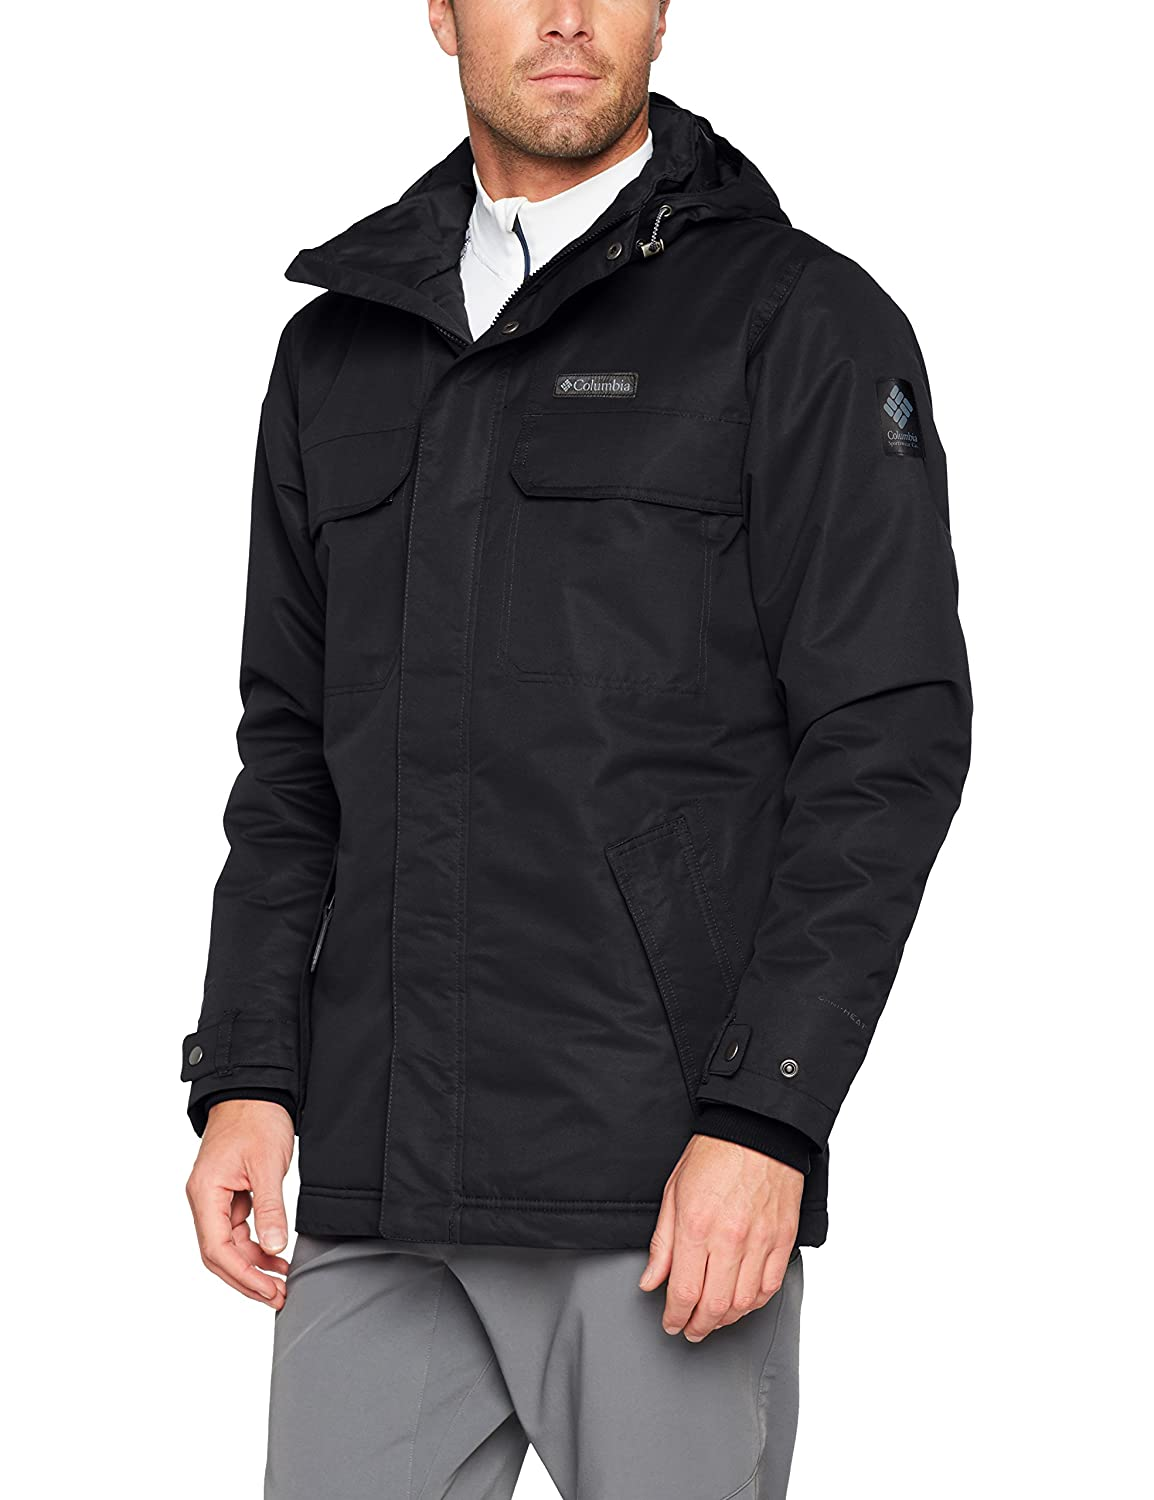 TALLA Talla XL. Columbia Rugged Path Jacket Chaqueta Impermeable, Hombre